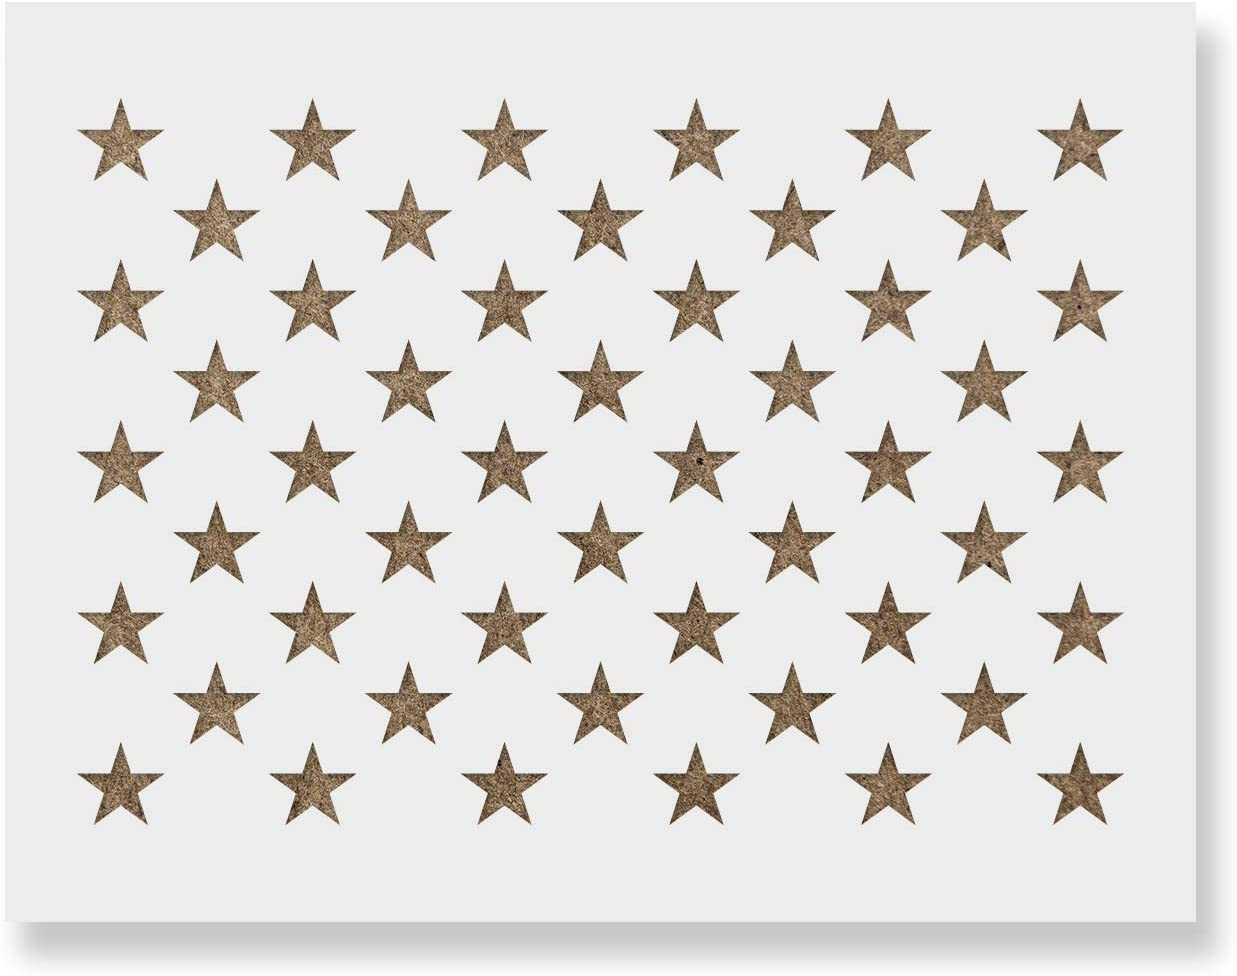 50 Stars Stencil - Reusable Stencils for Painting - Create DIY American Flag Crafts and Decor